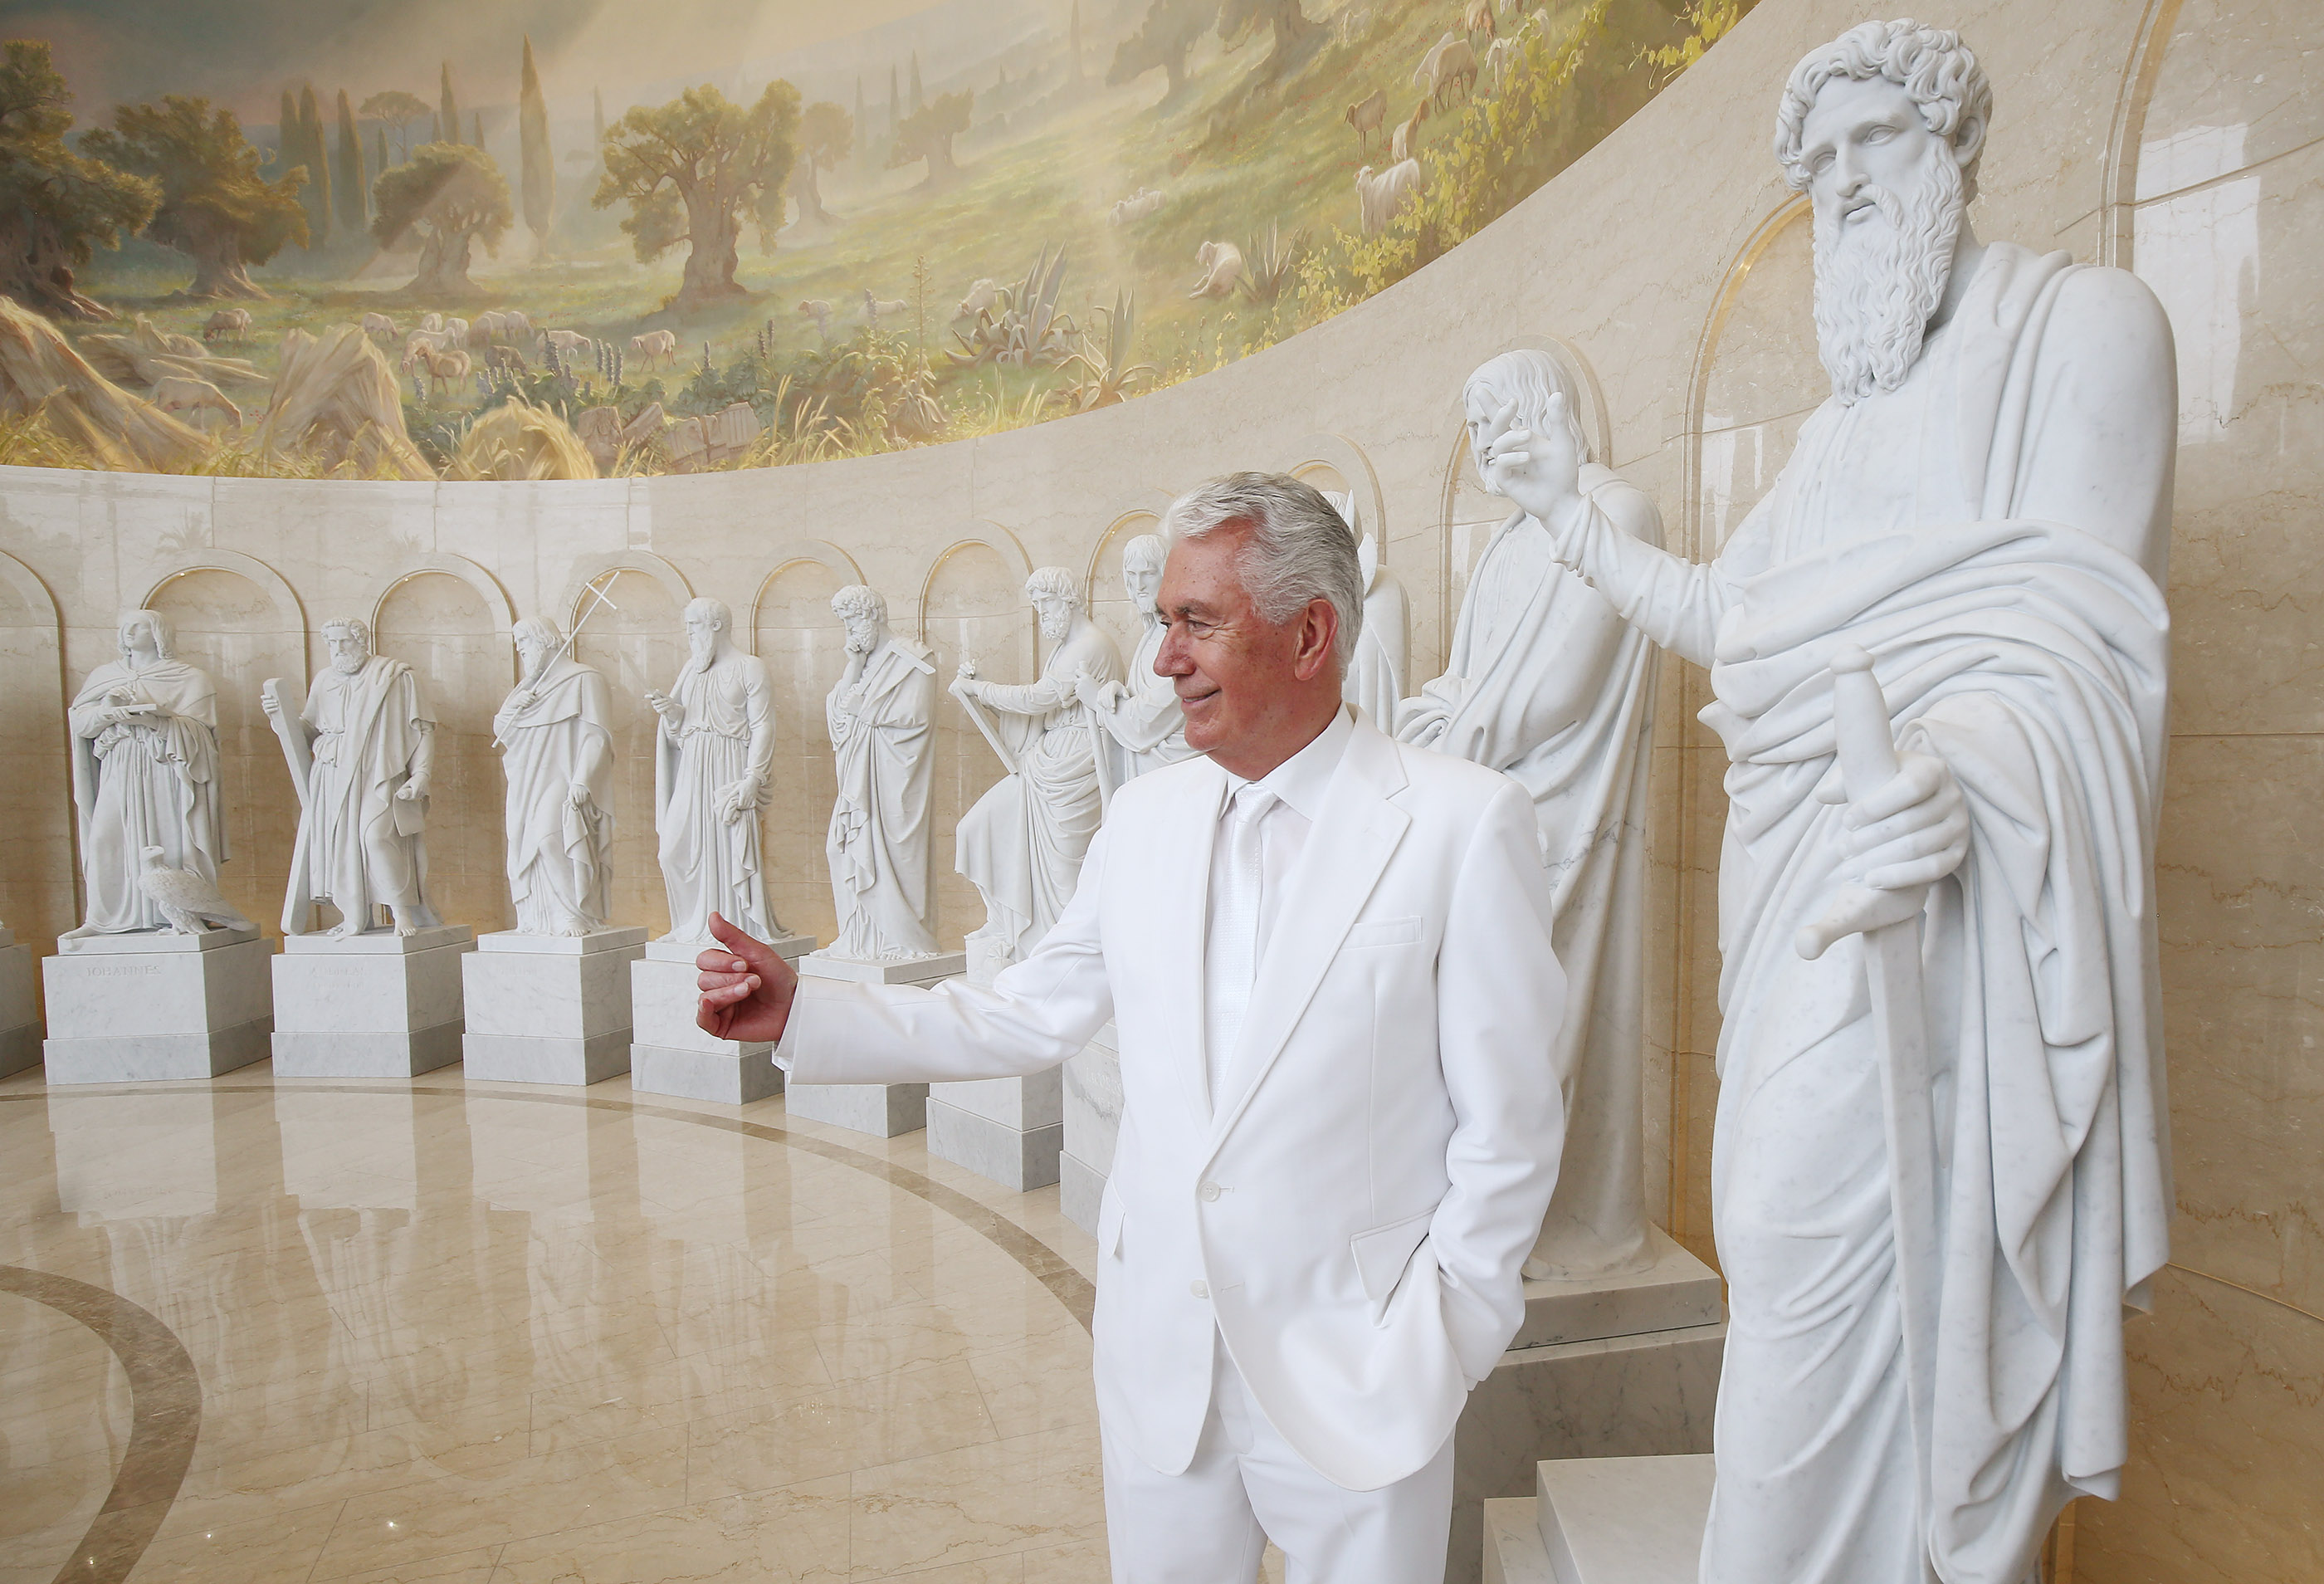 Elder Dieter F. Uchtdorf, of the Quorum of the Twelve Apostles of The Church of Jesus Christ of Latter-day Saints, looks over the Rome Italy Temple visitors center in Rome, Italy on Monday, March 11, 2019.